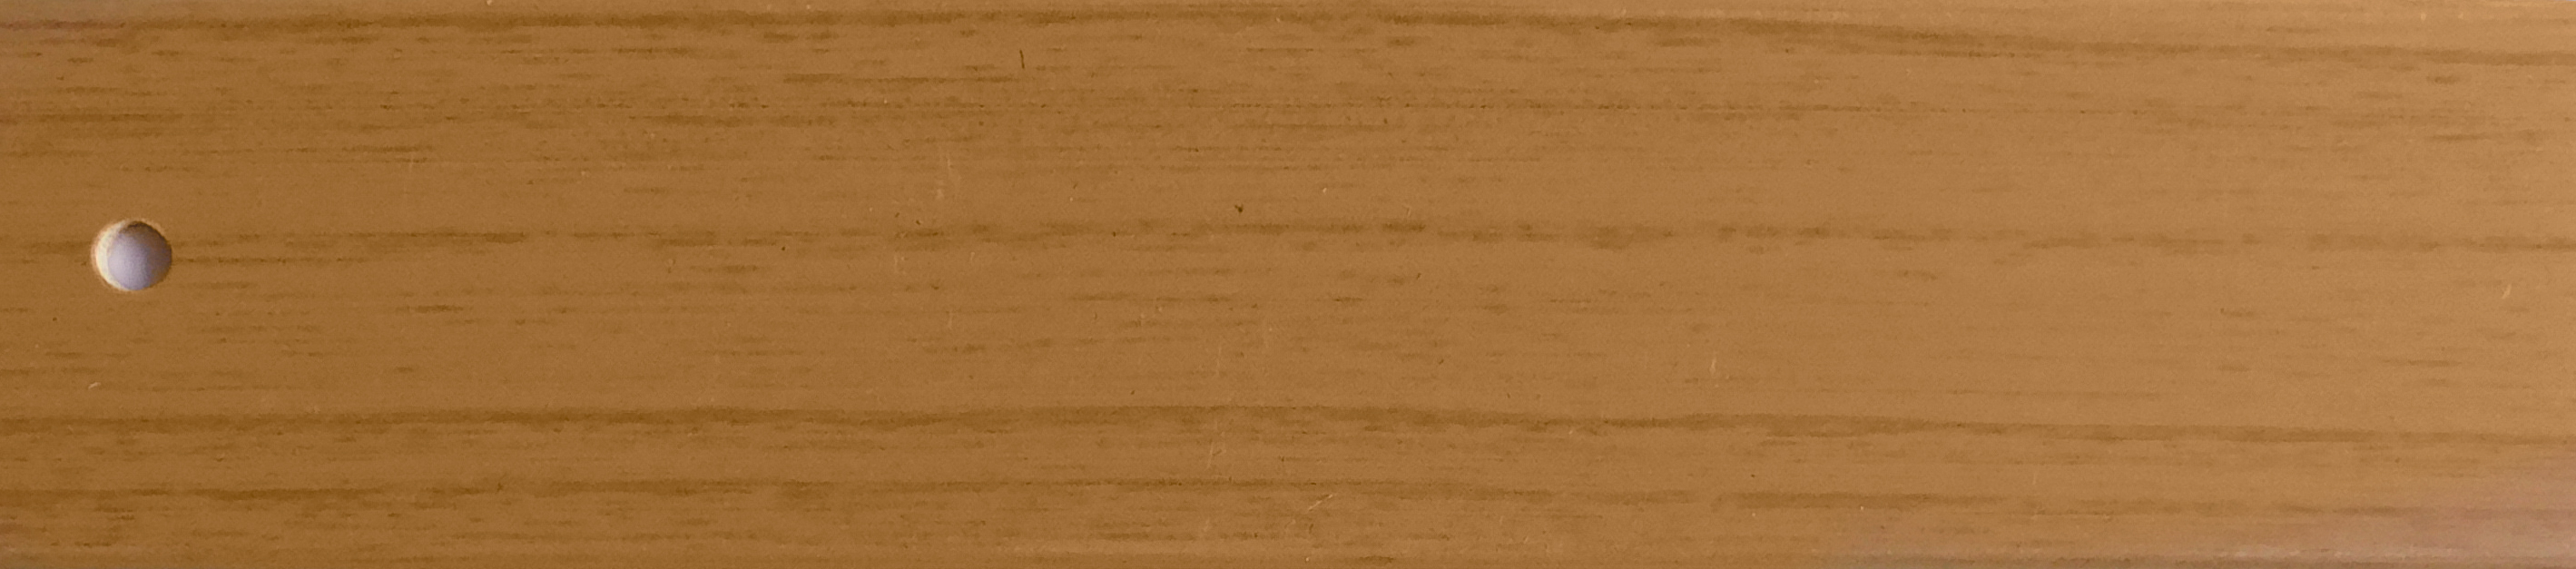 Desert Oak Fauxwood blind slat